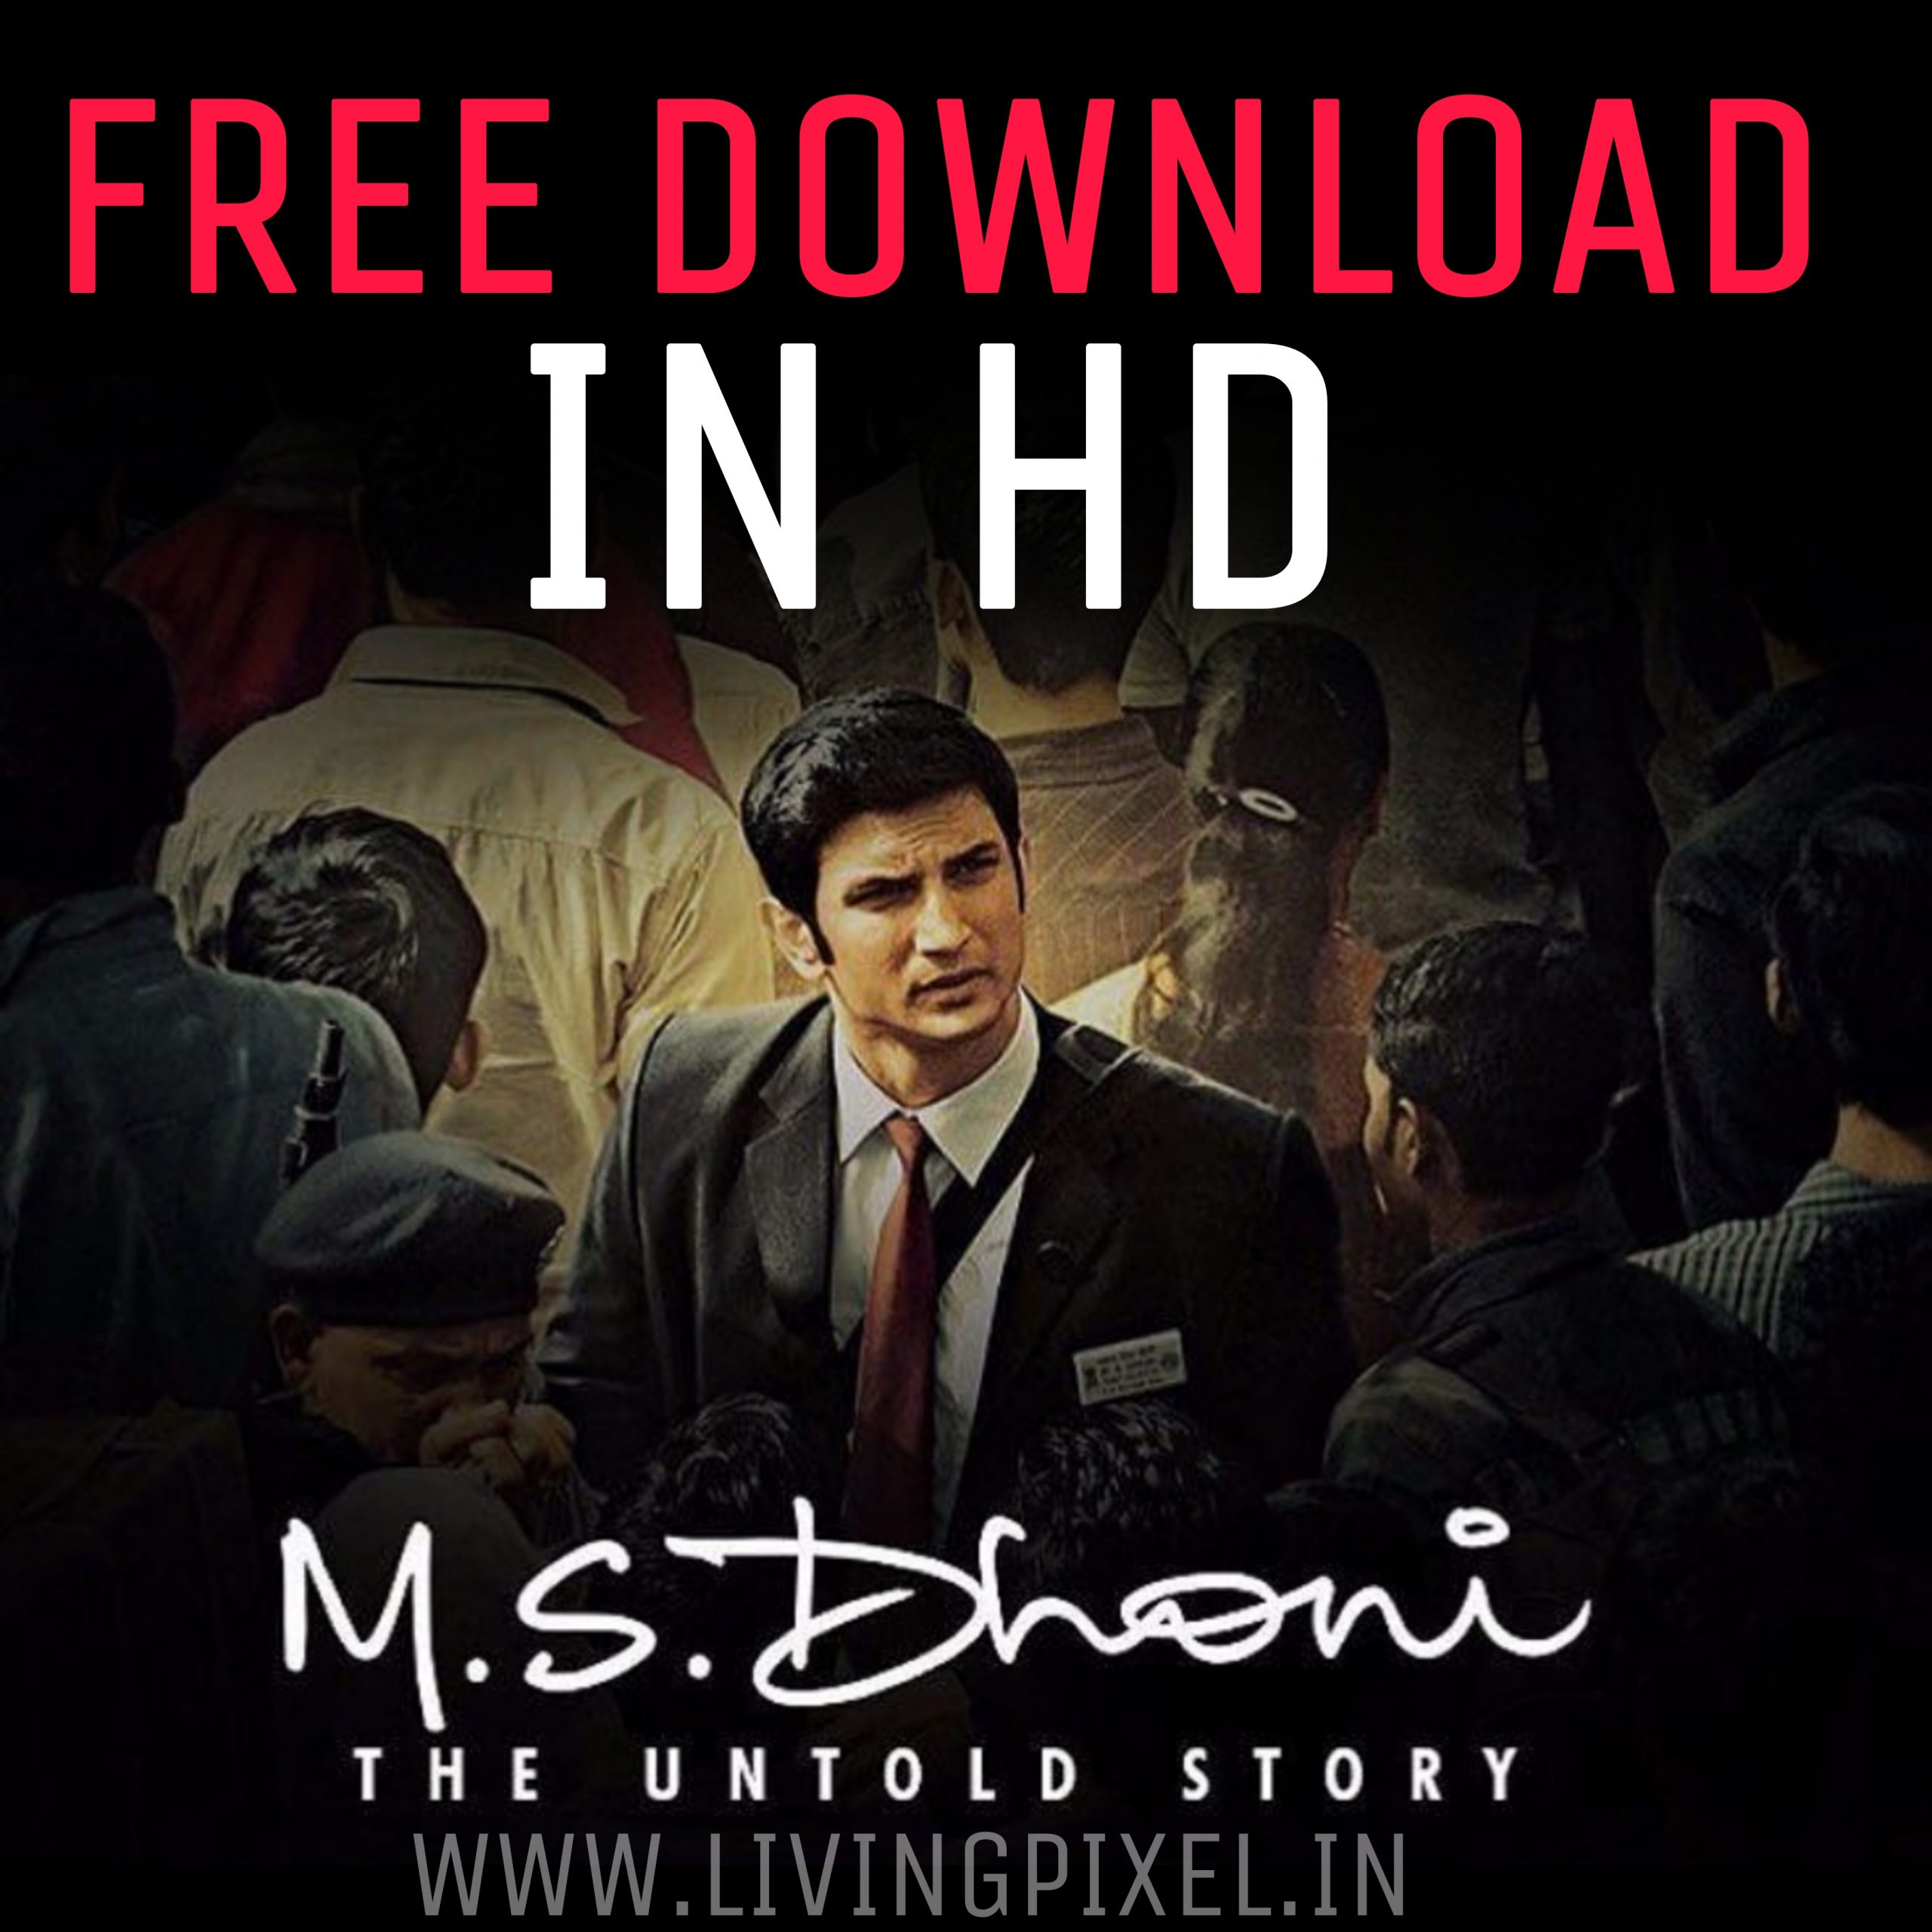 MS Dhoni The Untold Story full movie download 720p Filmywap in HD